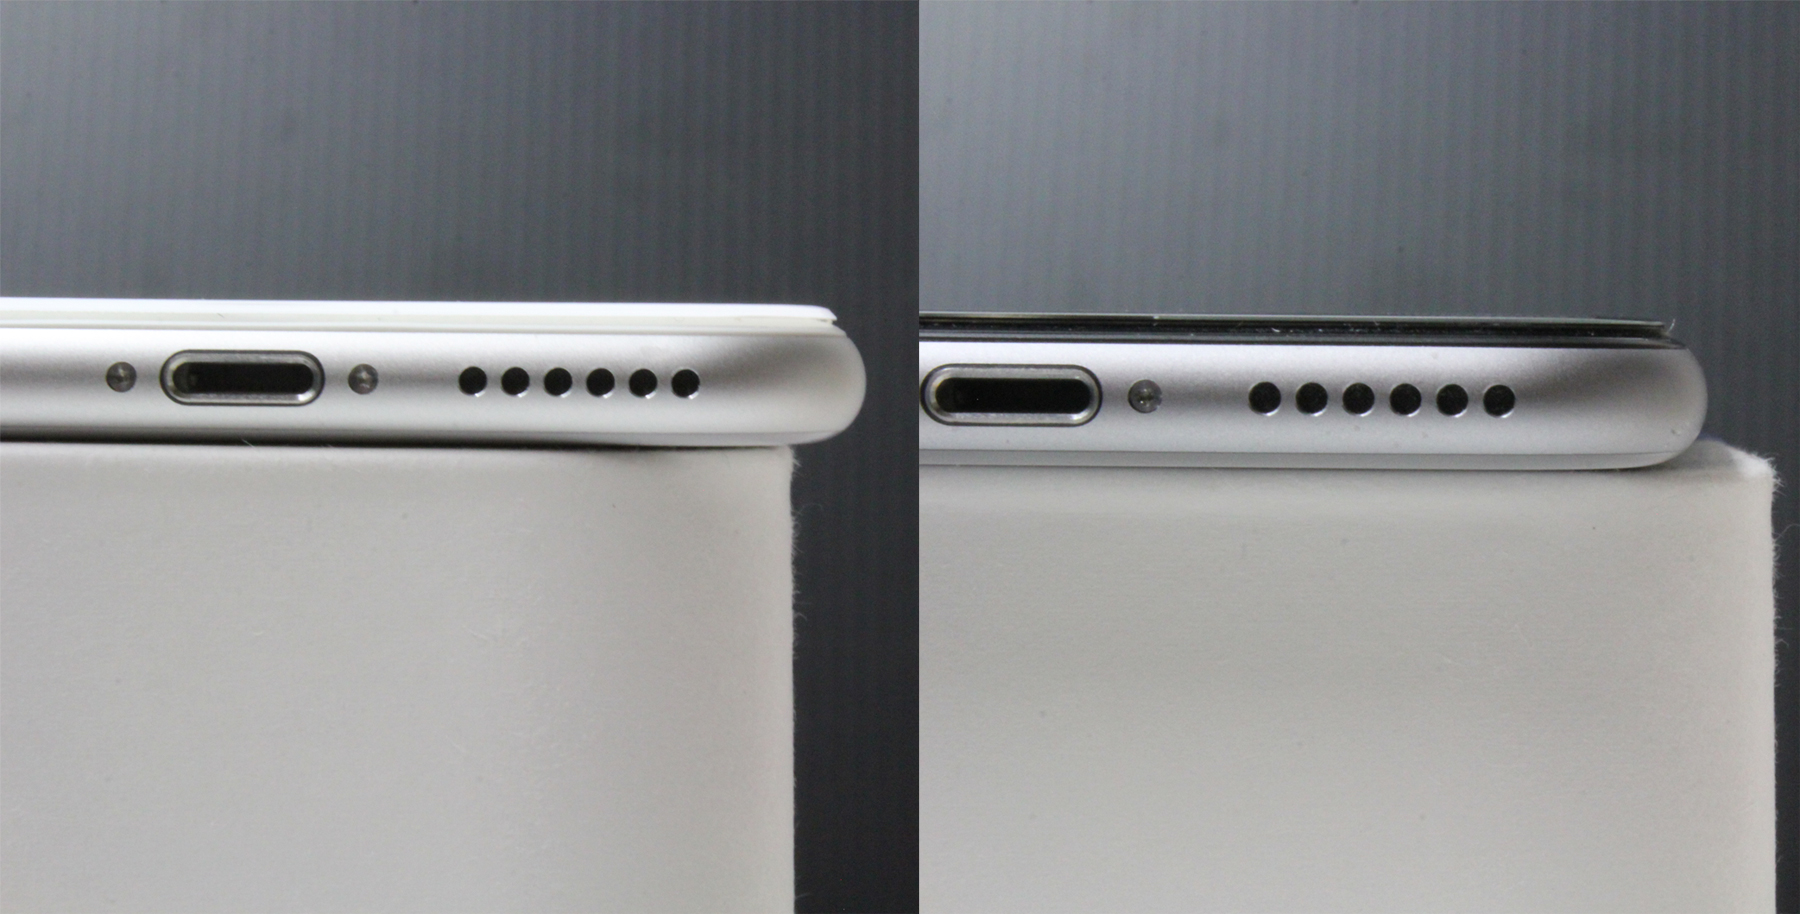 3Dカーブ採用!Armorz Stealth Extreme R with Curve Protect 強化ガラス保護シート for iPhone 6 (上級者向け)